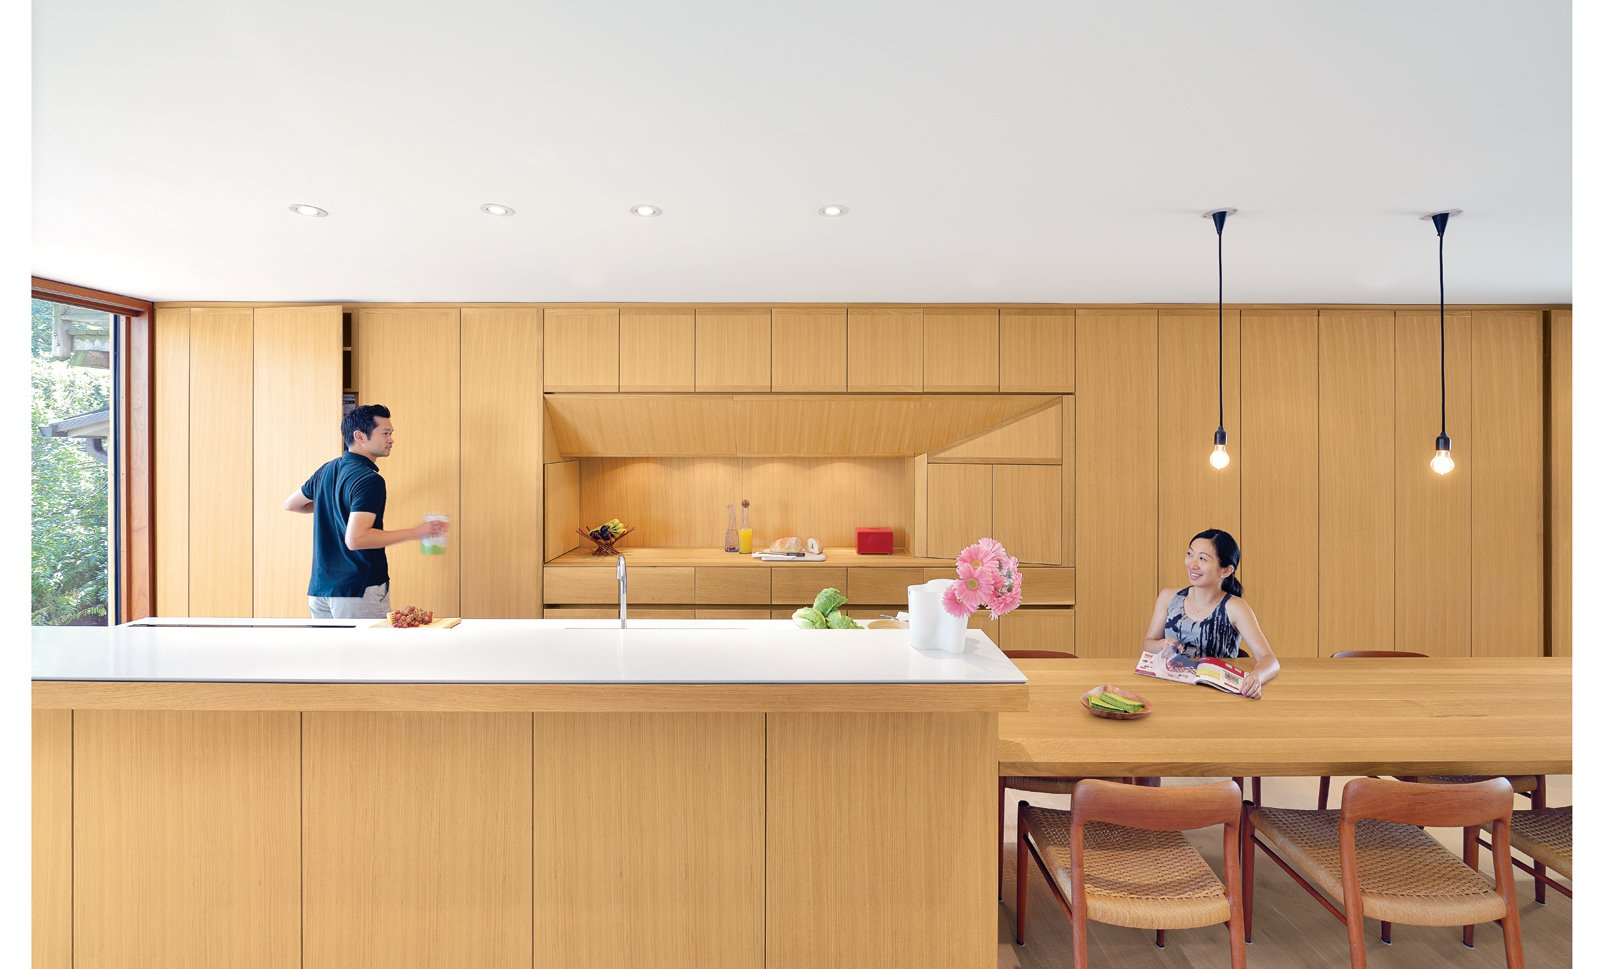 The white oak used for the cabinets, kitchen island, and dining table is finished with double-boiled linseed oil, which can be reapplied by the homeowners as the wood mellows and patinas. Tagged: Kitchen, Wood Cabinet, and Pendant Lighting.  Best Photos from Kitchen Solutions: Smart Storage Design